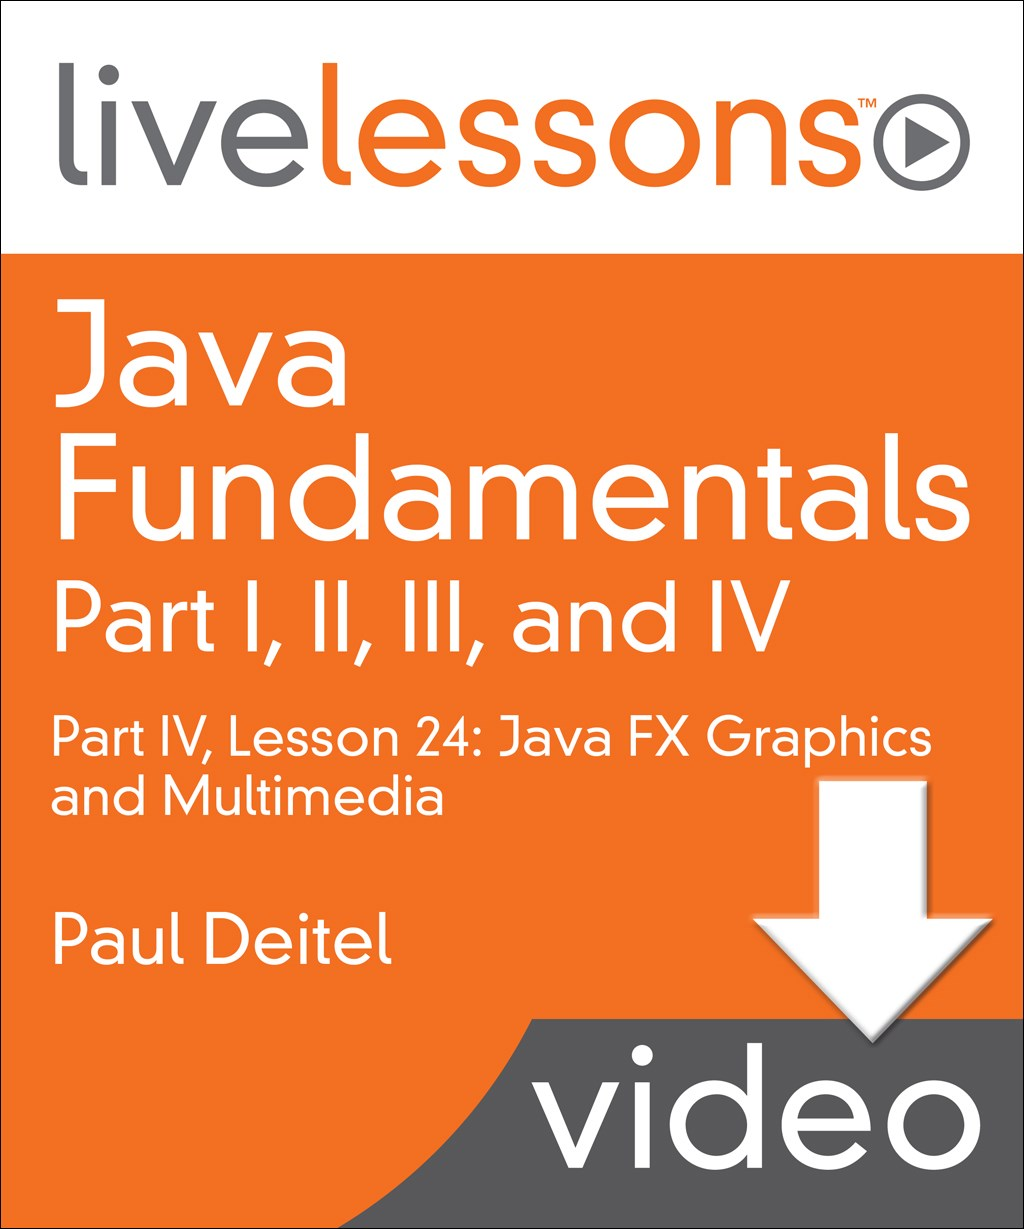 Java Fundamentals LiveLessons Parts I, II, III, and IV (Video Training): Part IV, Lesson 24: Java FX Graphics and Multimedia , Downloadable Version